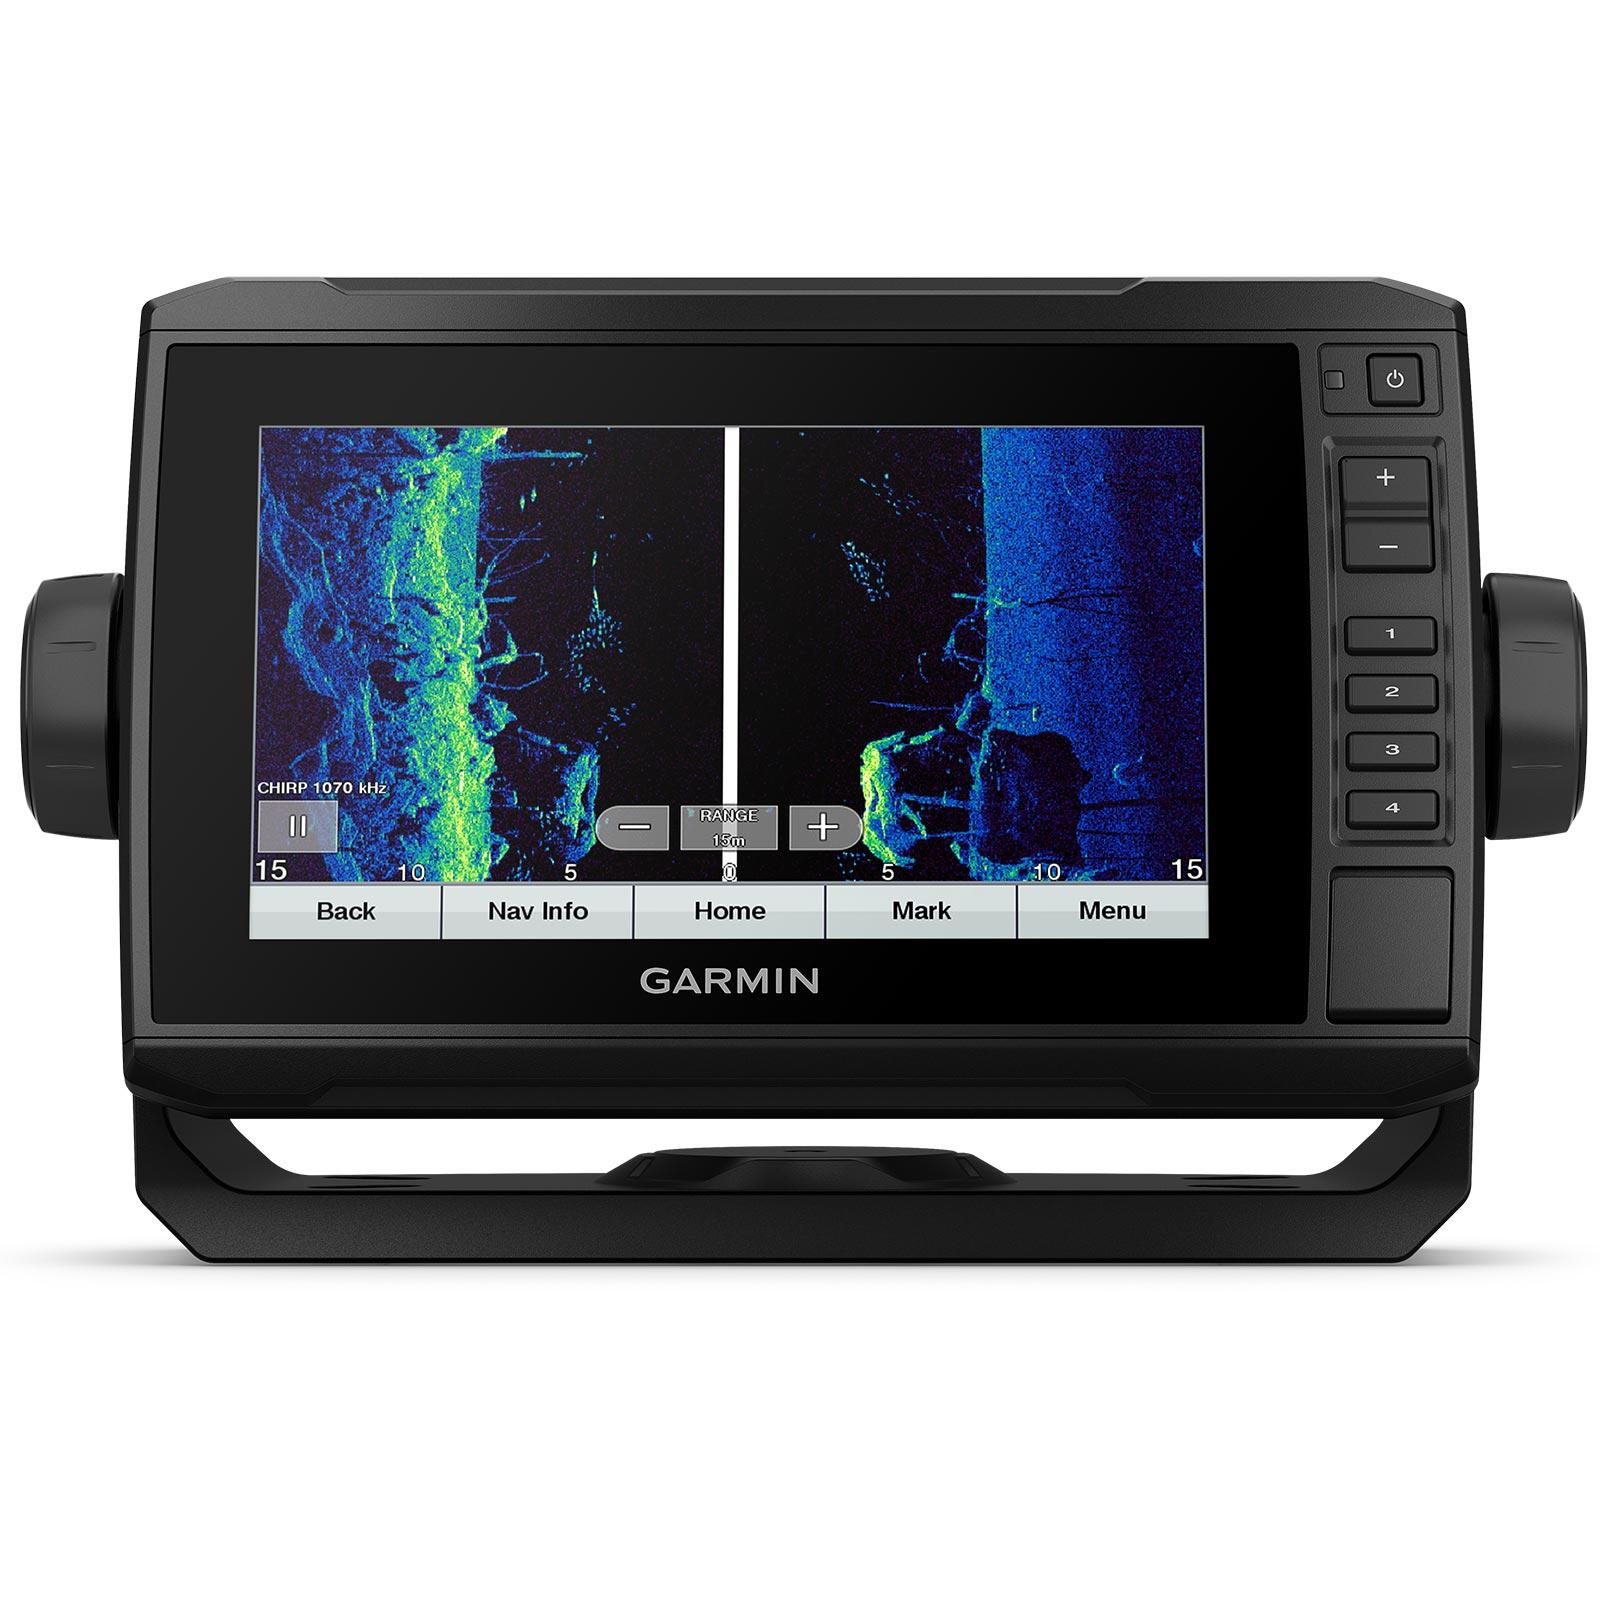 Garmin ECHOMAP UHD 72sv with GT56UHD-TM Transducer Split Screen